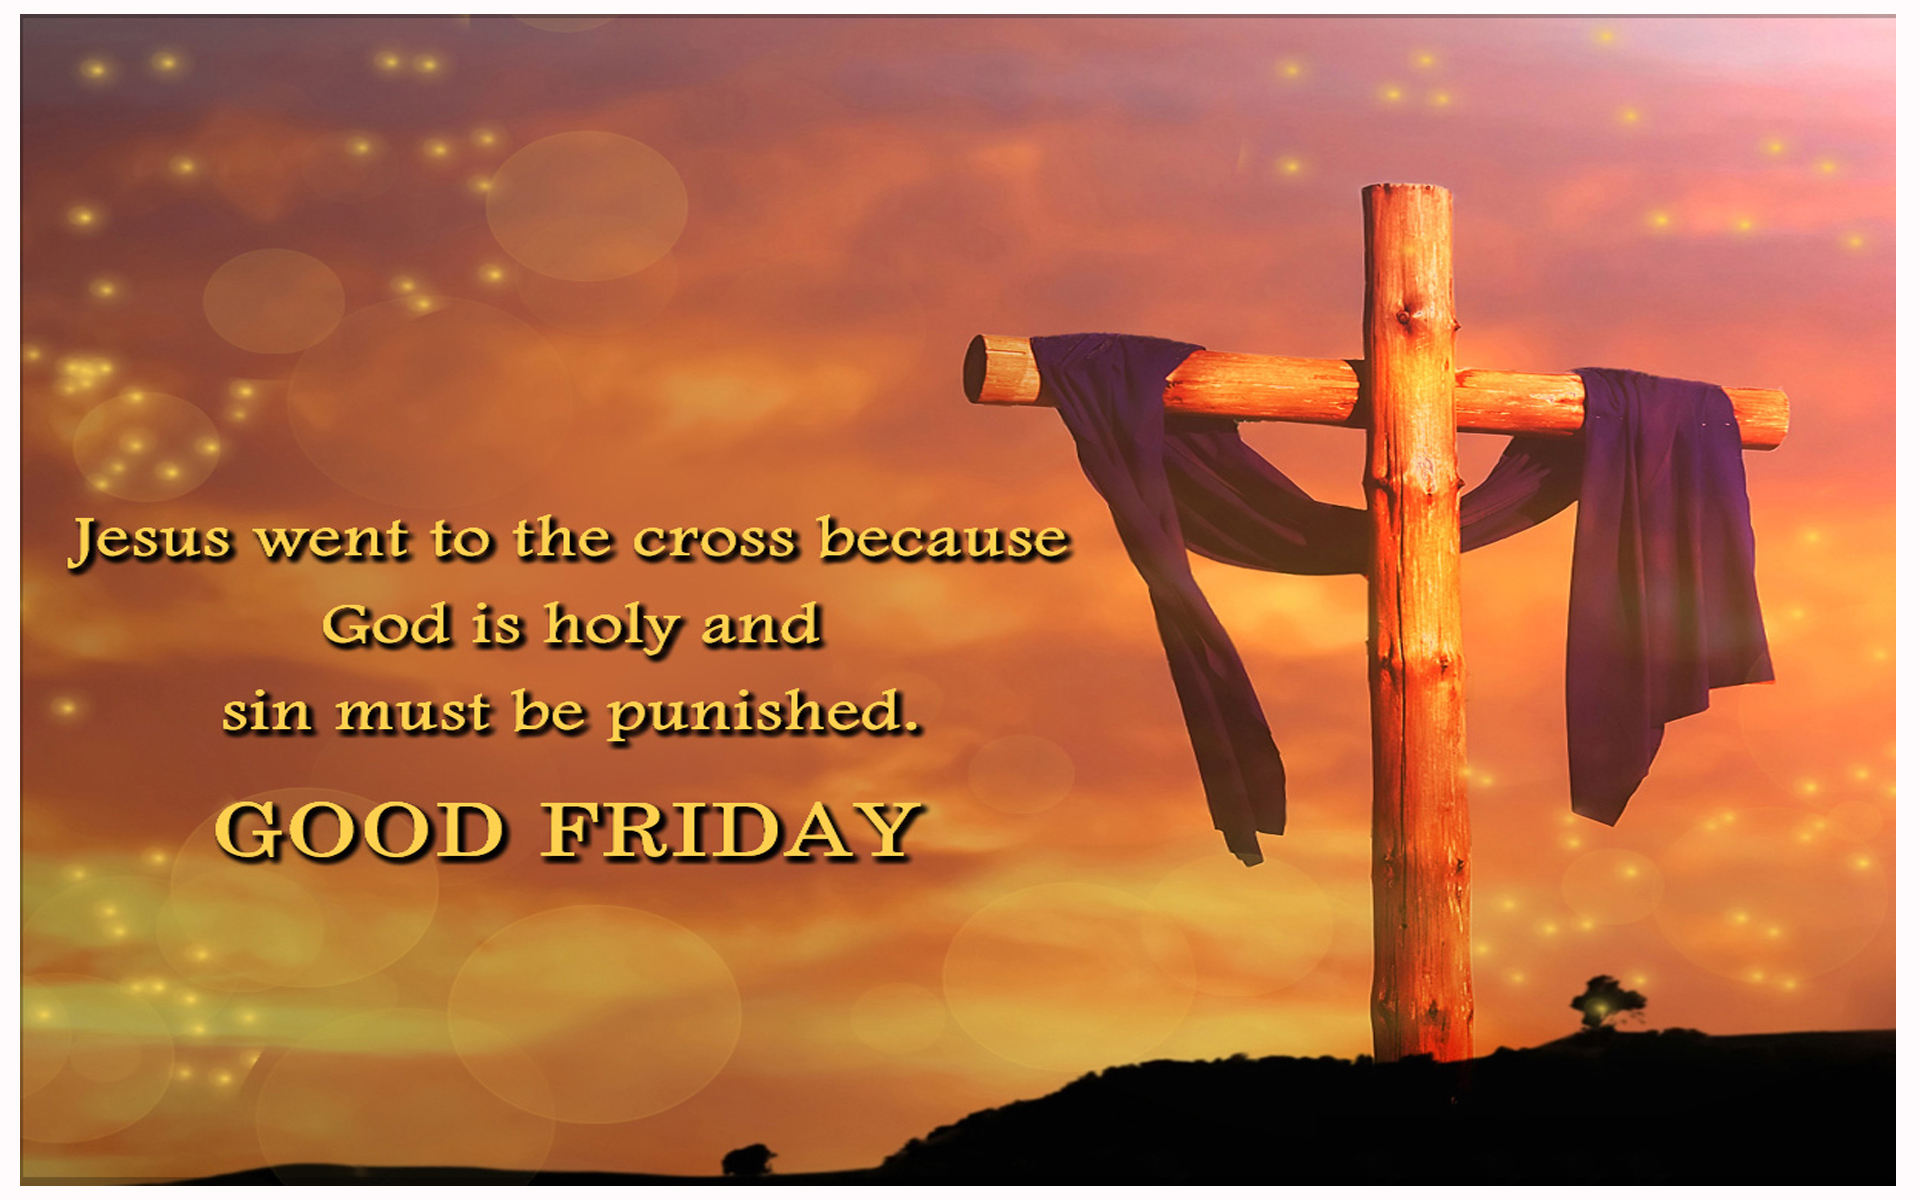 Happy Good Friday 2019 Wallpaper- Download Free Wallpaper